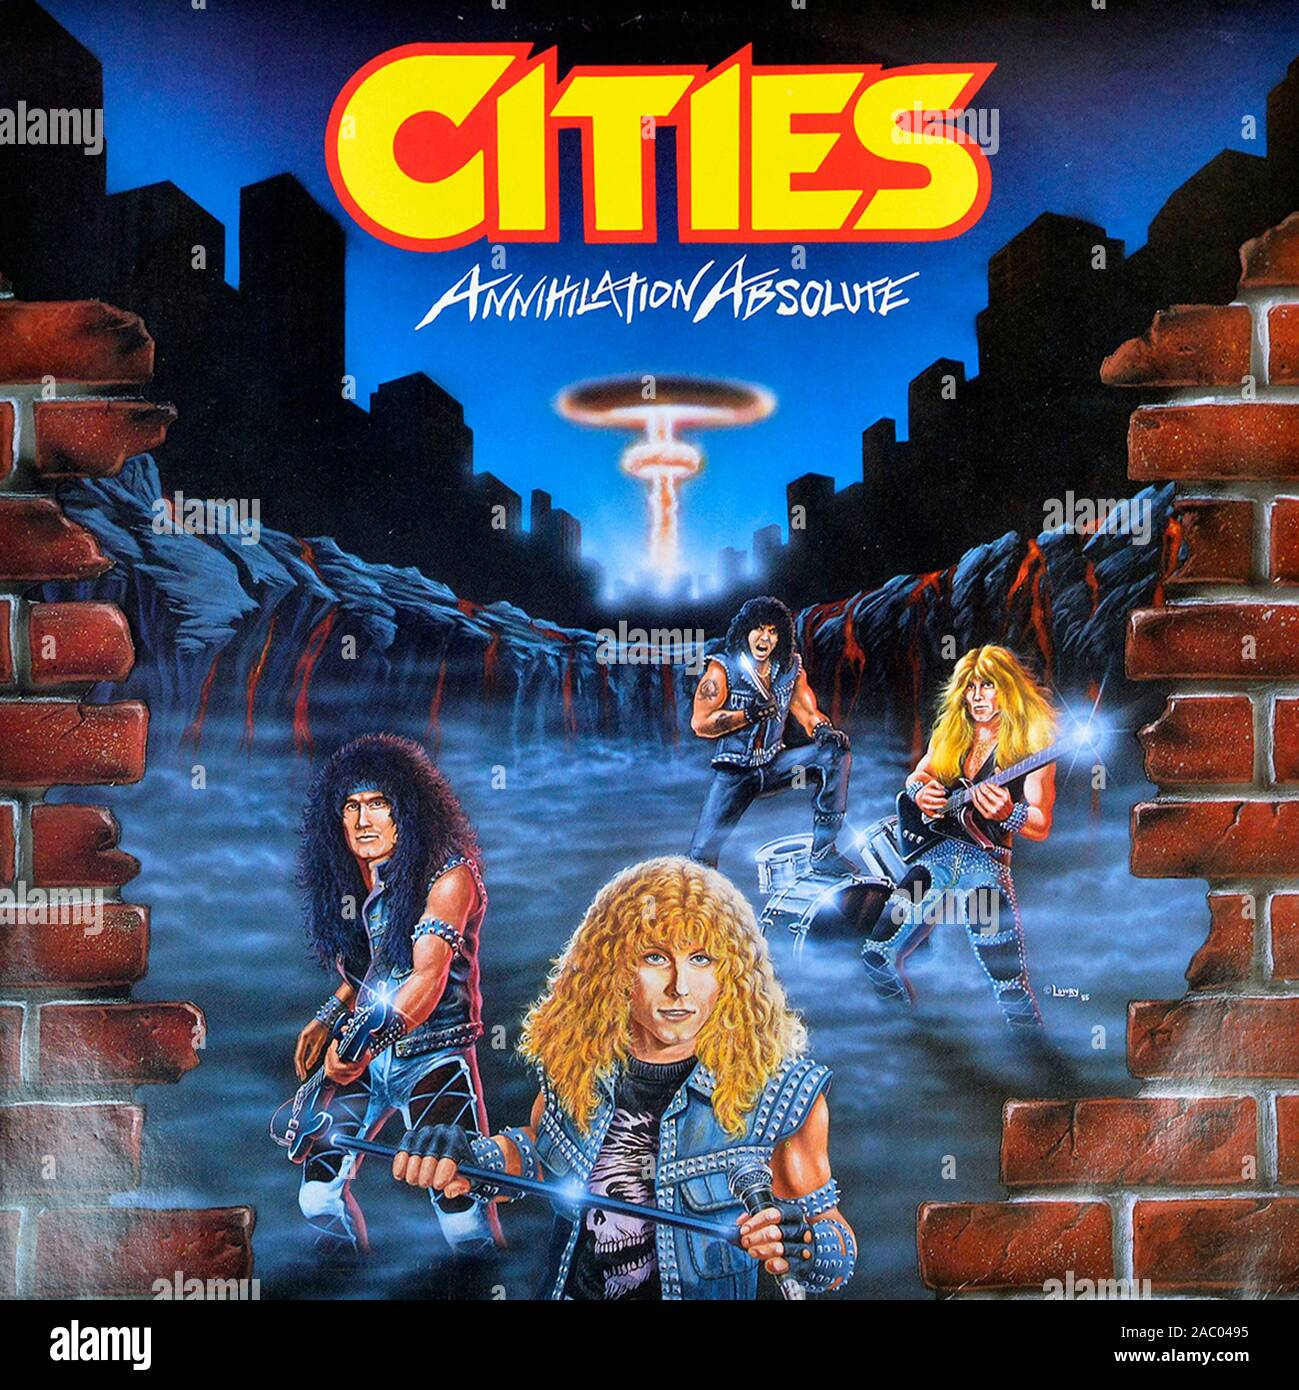 CITIES - Annihilation Absolute - Vintage vinyl album cover Stock Photo